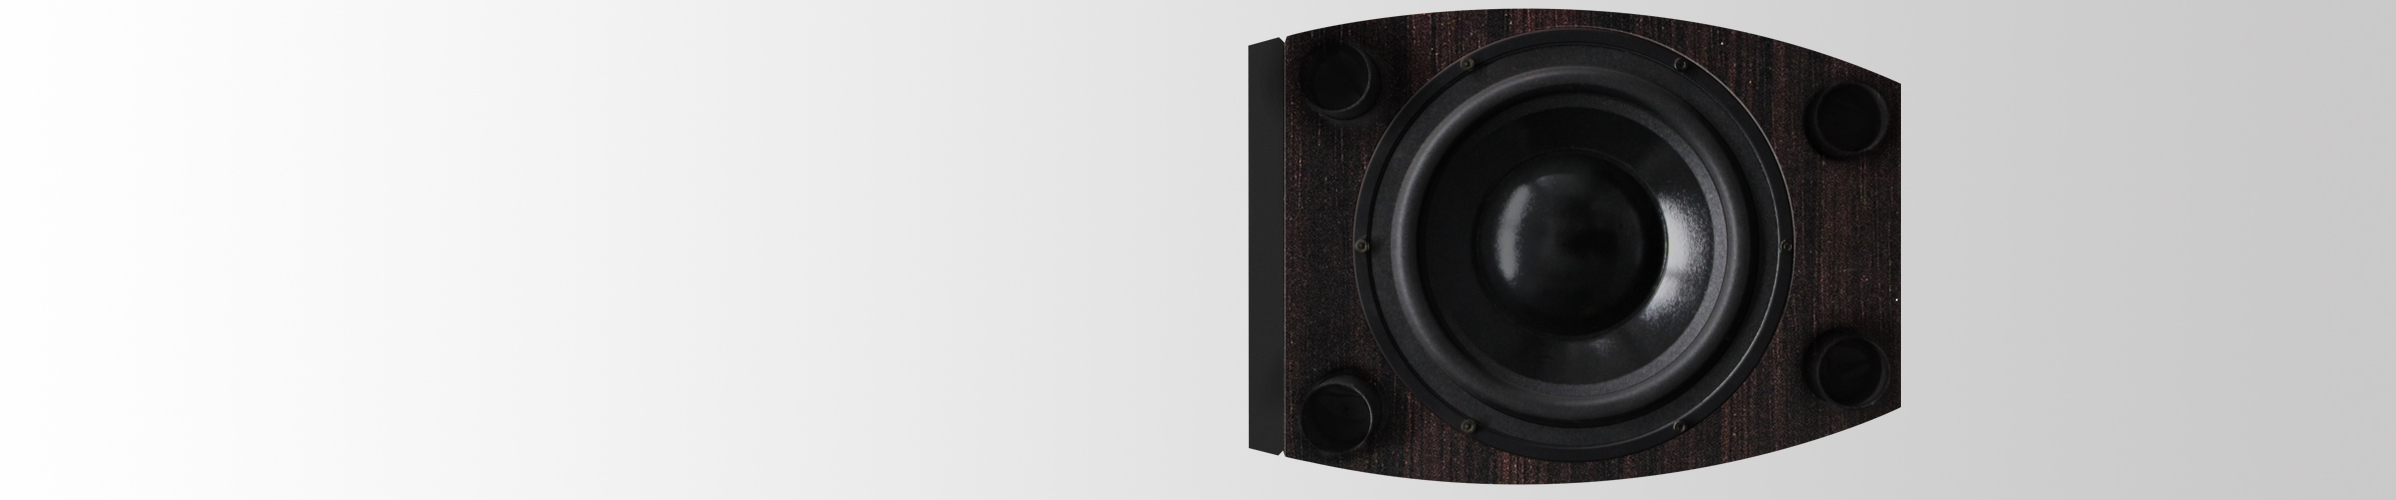 XL7FBK Floorstanding Speakers Subwoofer